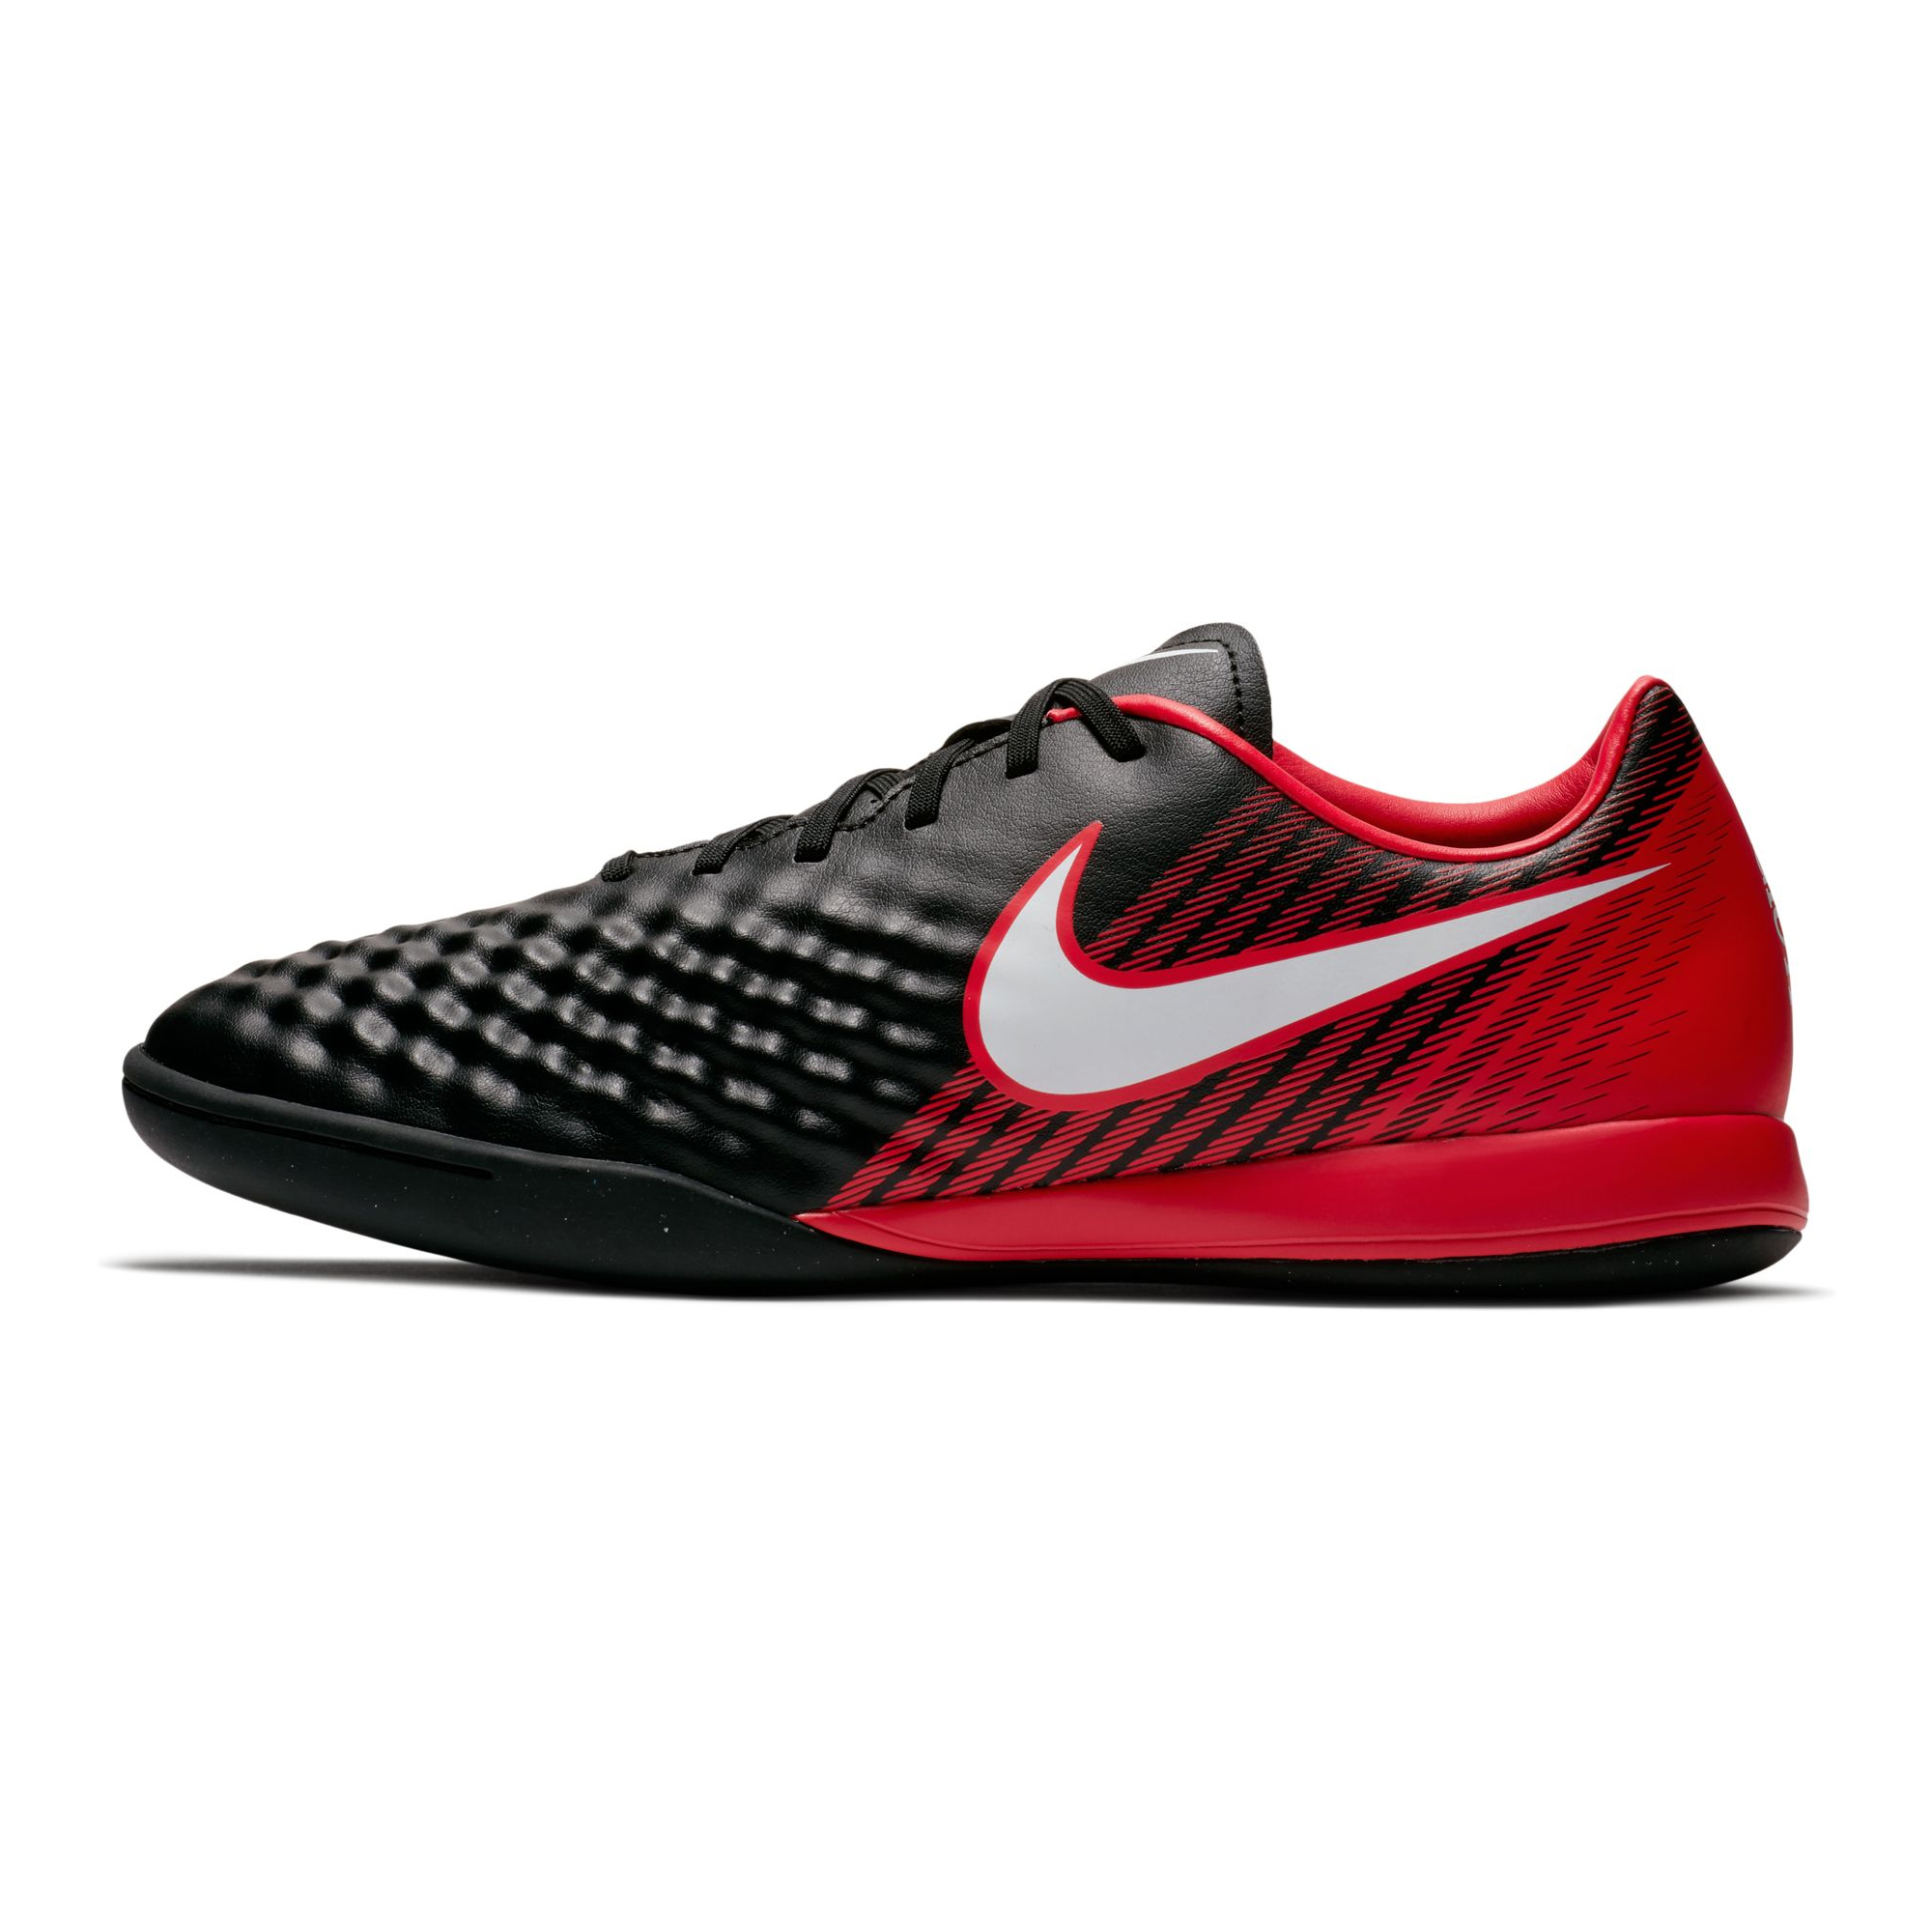 da55c2a8d Nike MagistaX Onda II IC - Black Red - fire   ice red